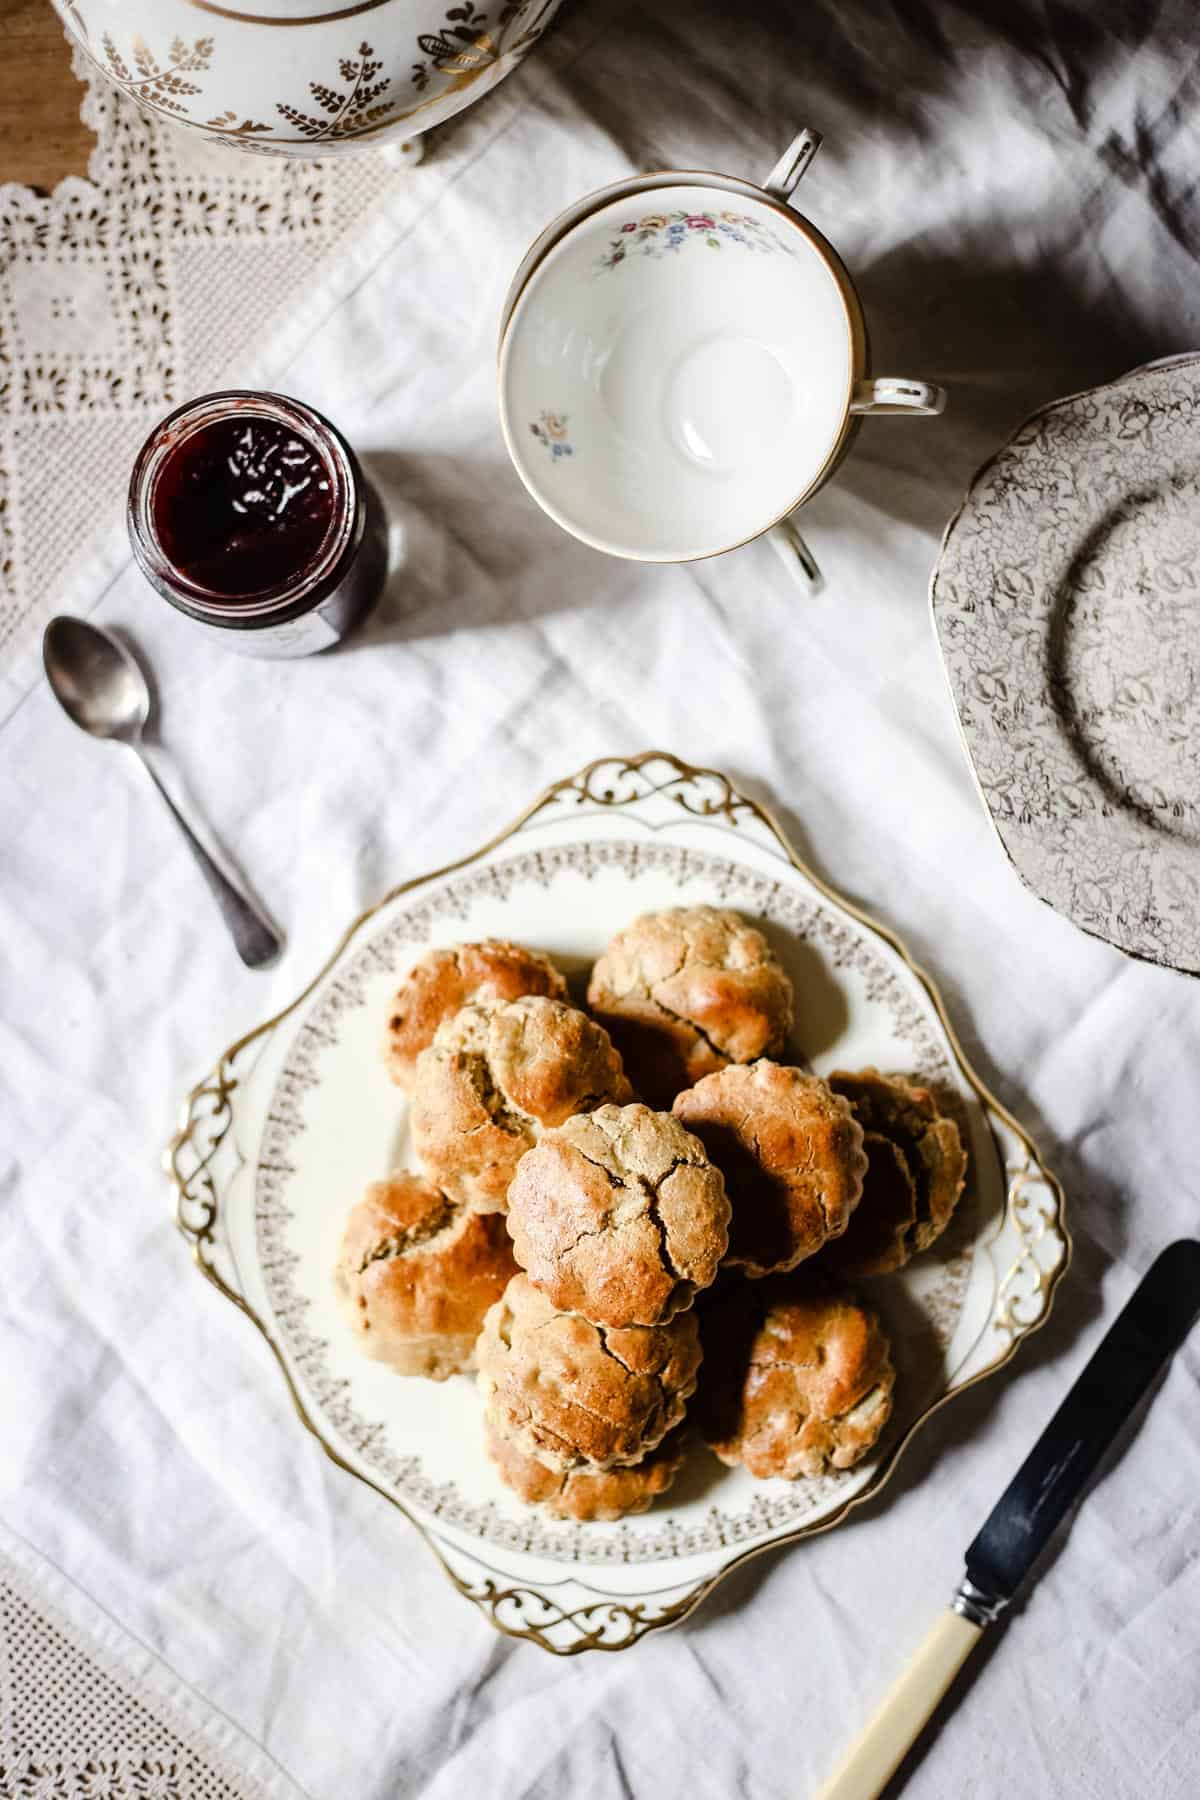 overhead image of apple scones on a china plate next to a tea set and a pot of jam